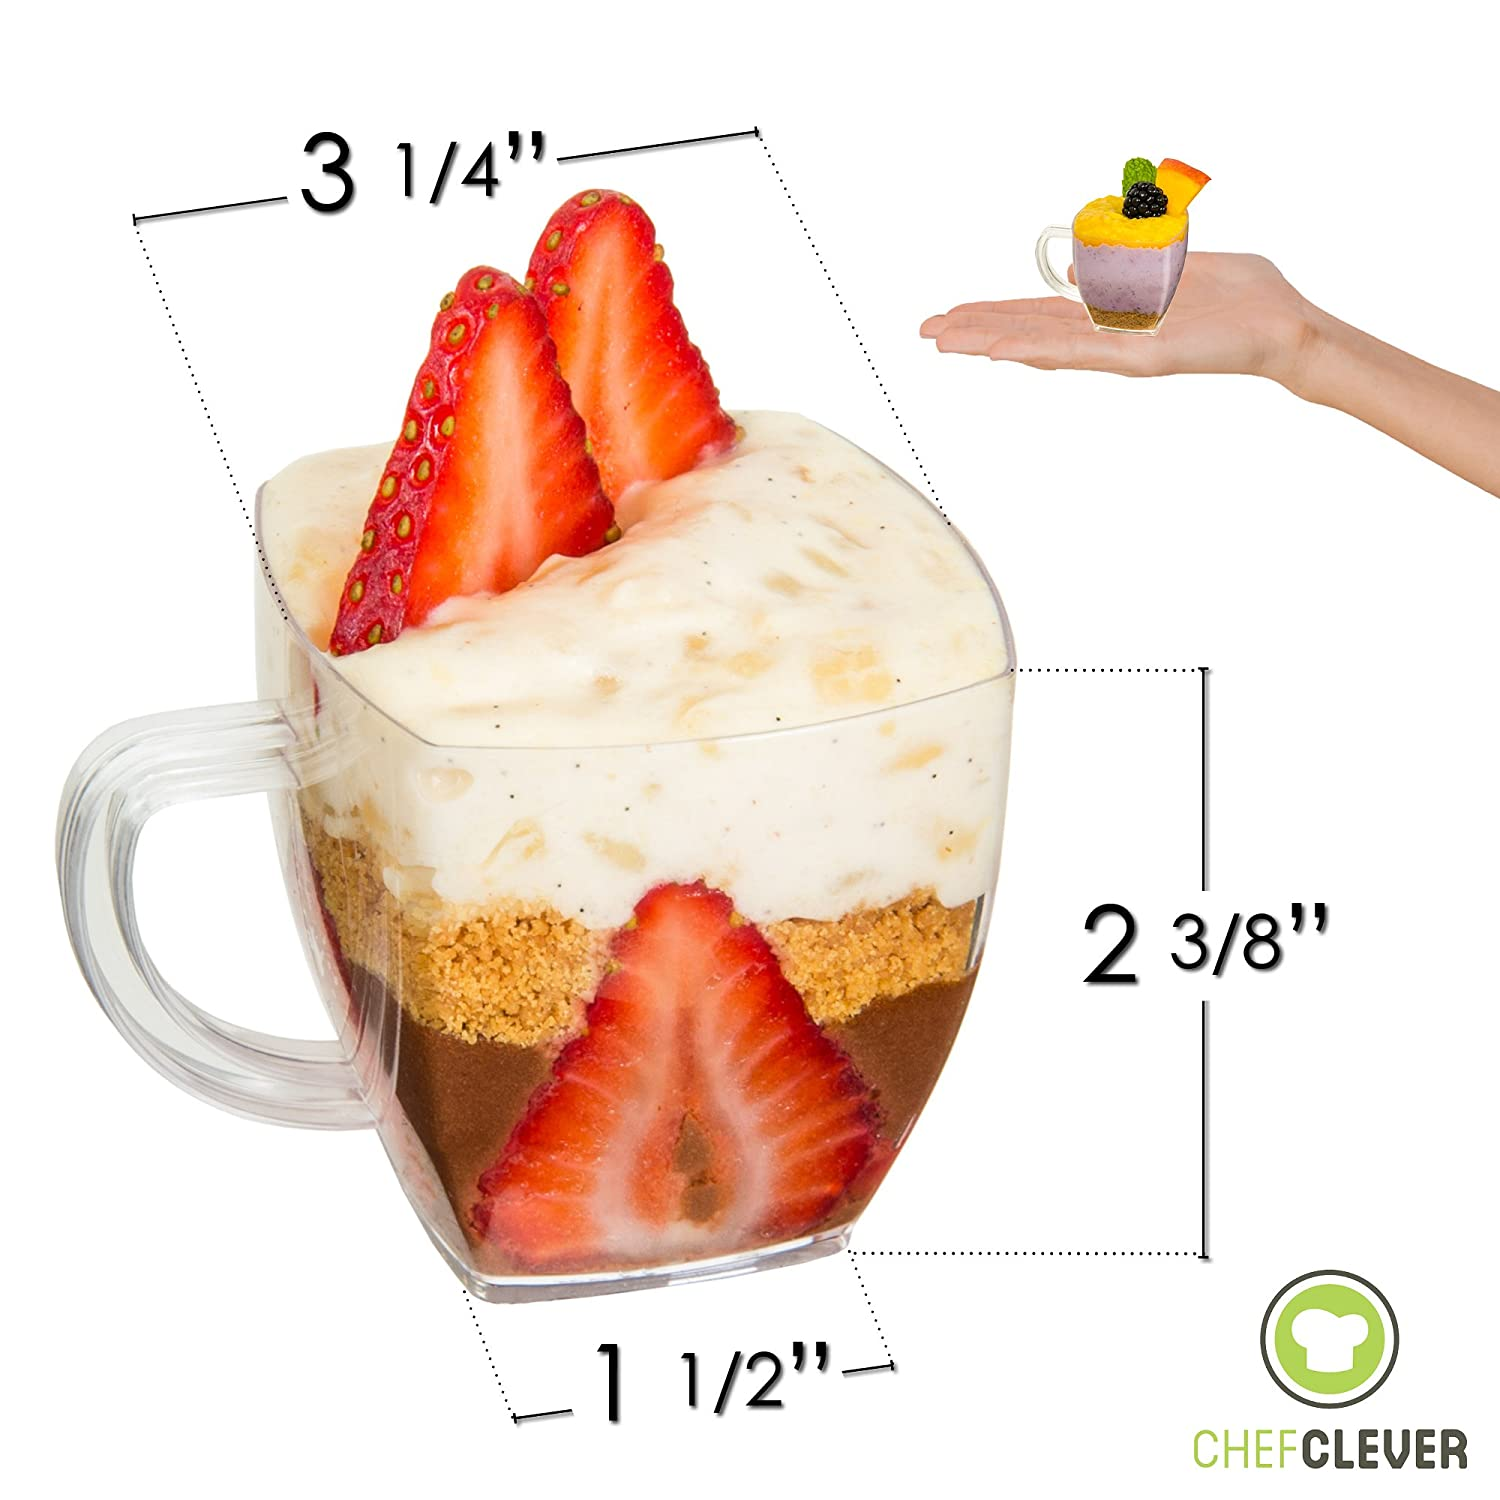 DLux 50 x 3 oz Mini Dessert Cups with Spoons Small Disposable Reusable Serving Bowl for Tasting Party Desserts Appetizers With Recipe Ebook Clear Plastic Parfait Appetizer Cup Small Swirl